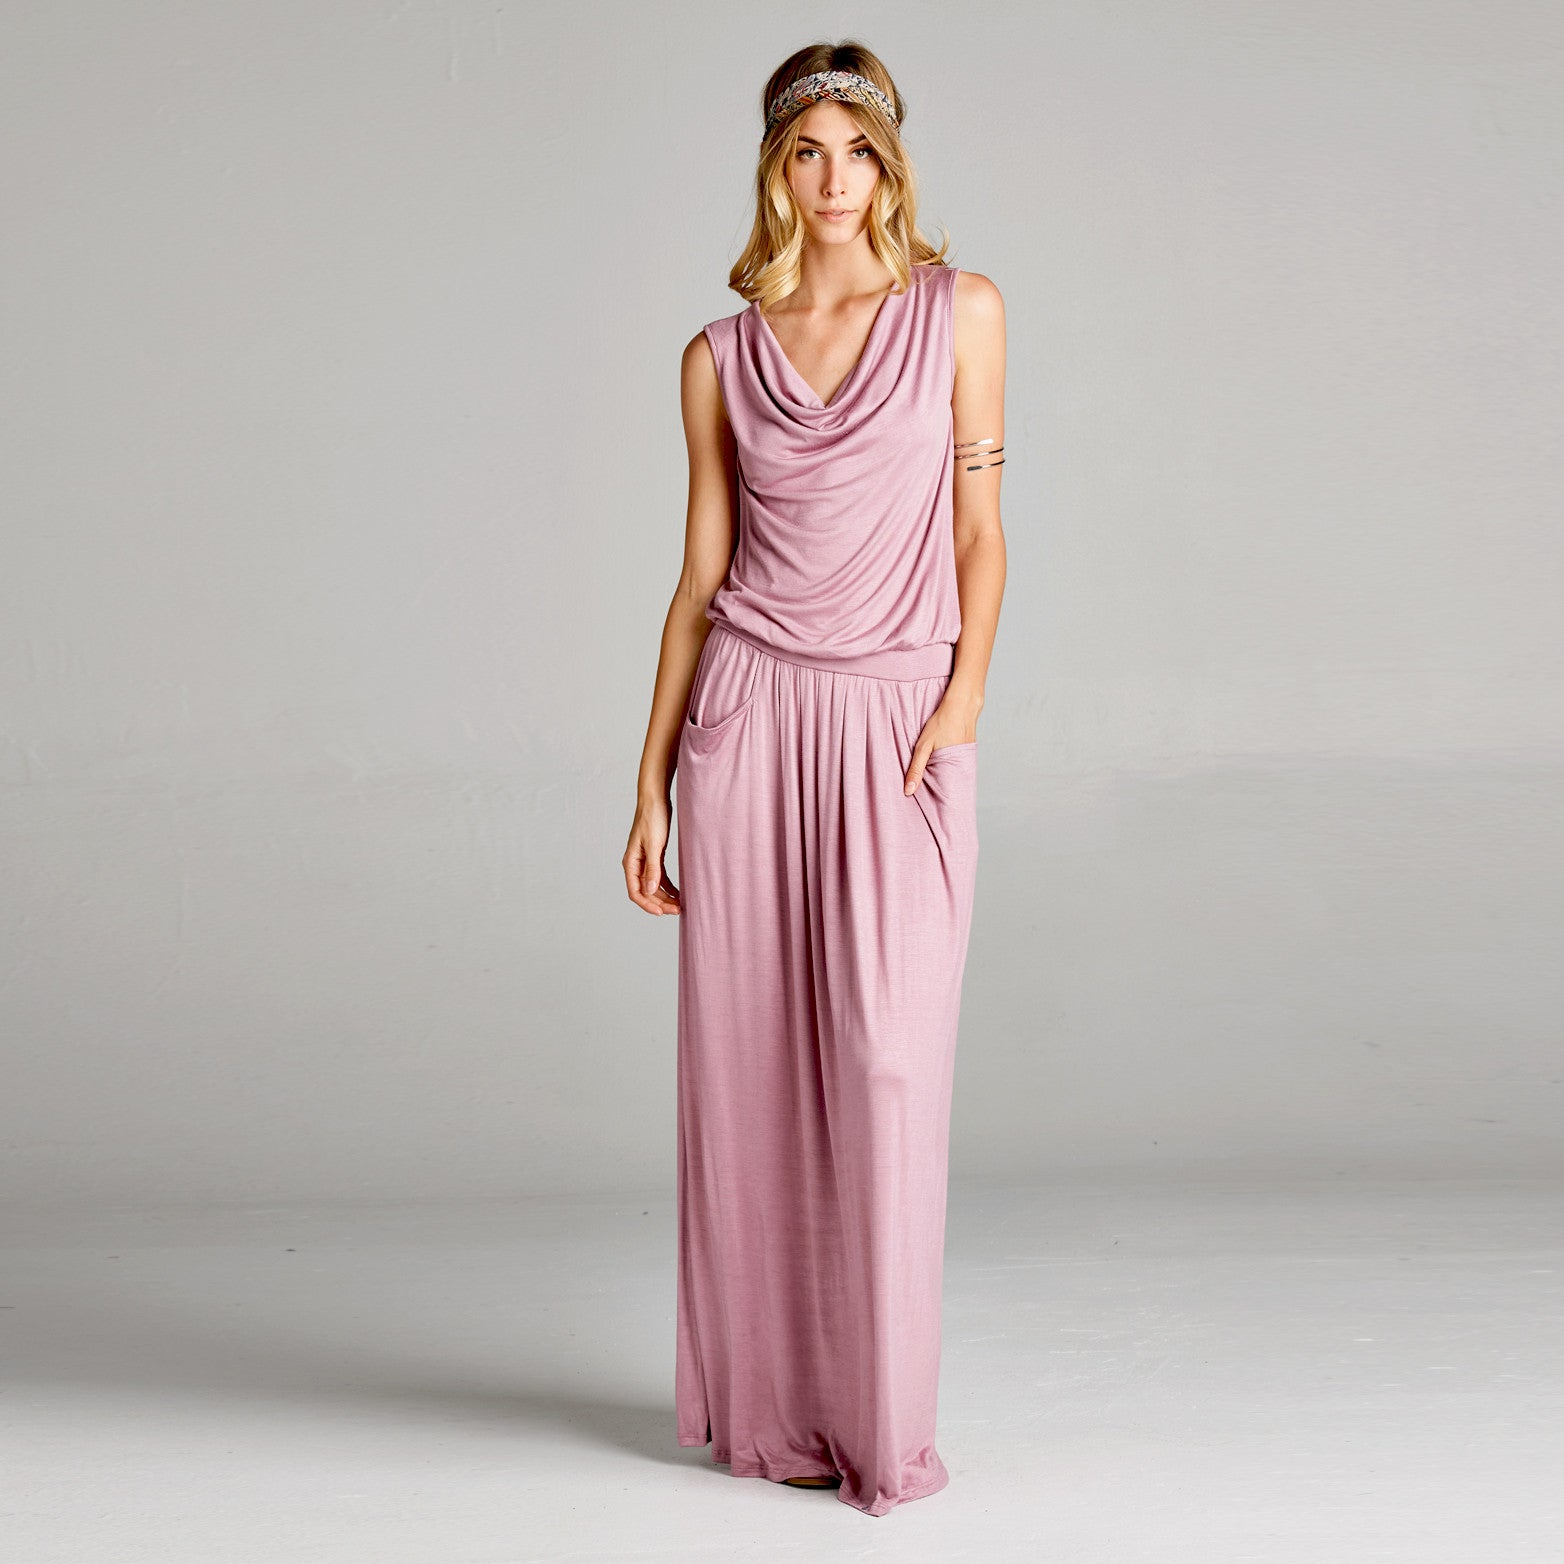 Cowl Neck Maxi Dress with Pockets